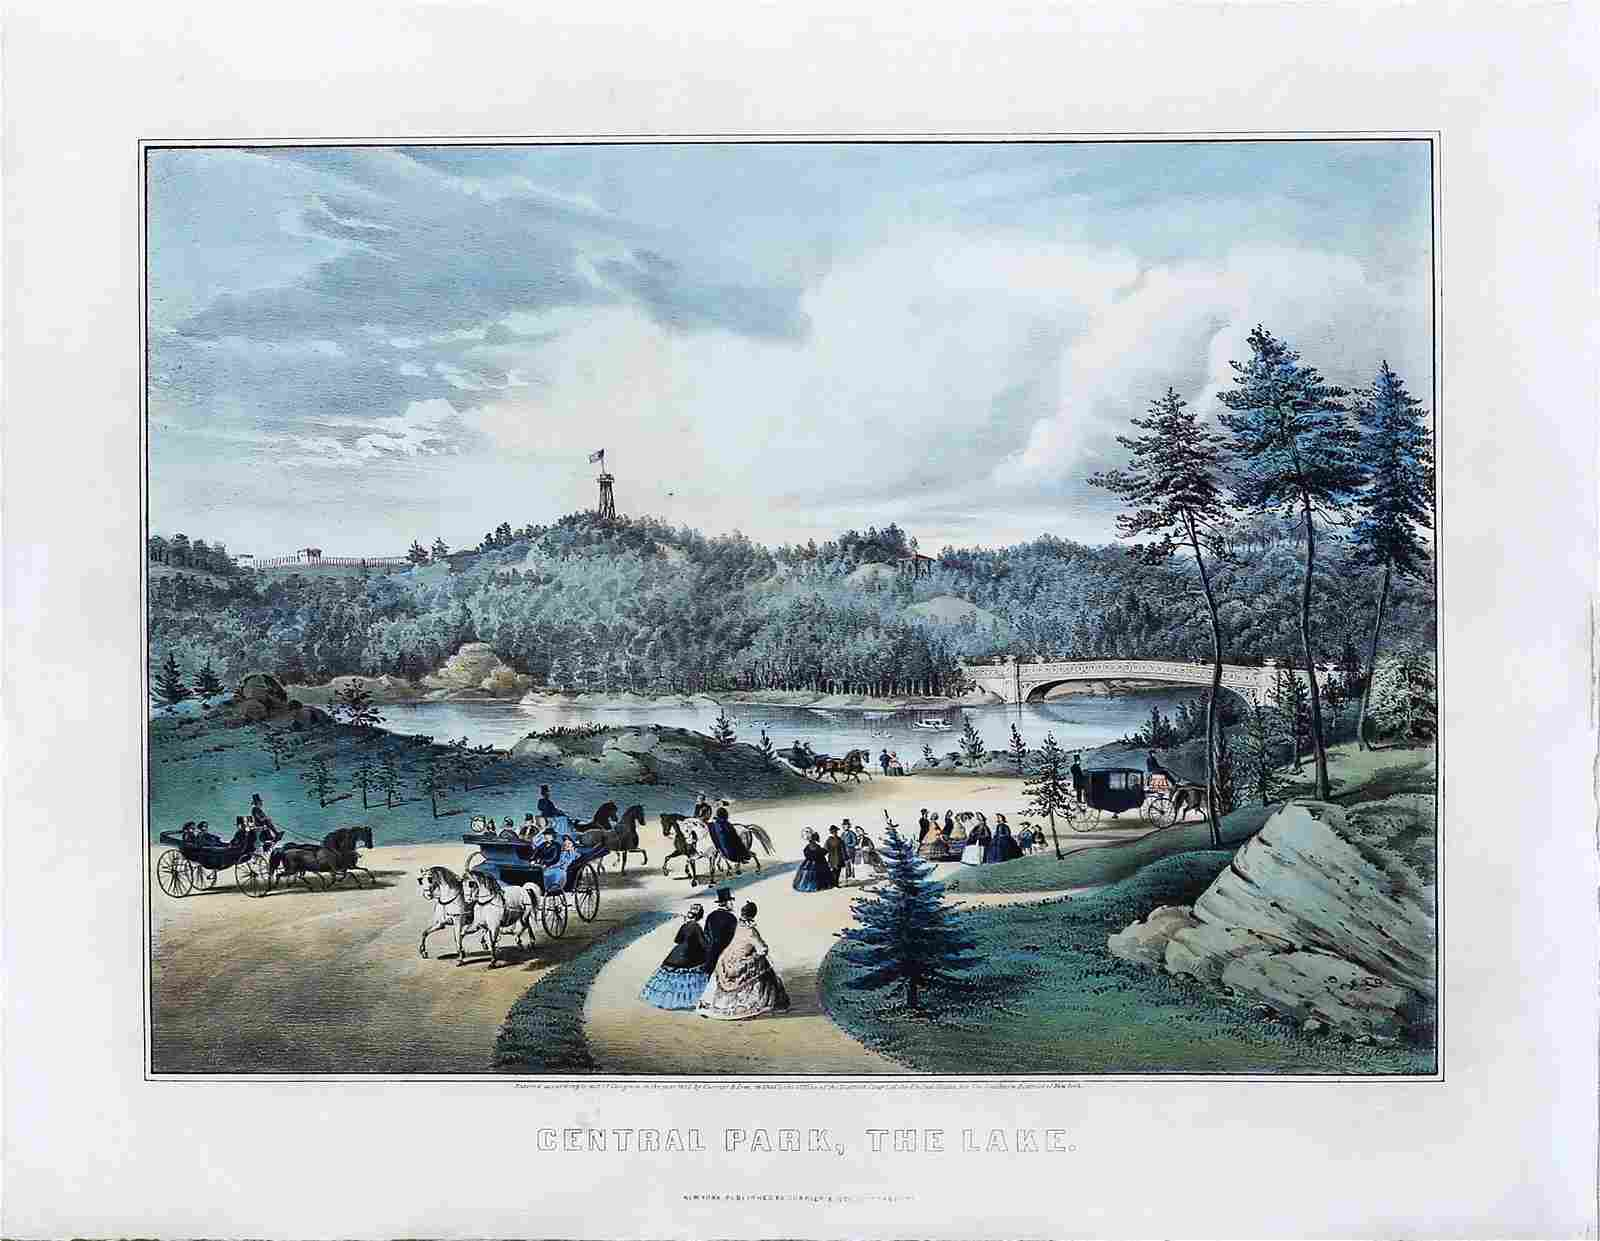 Currier & Ives, Central Park, the lake